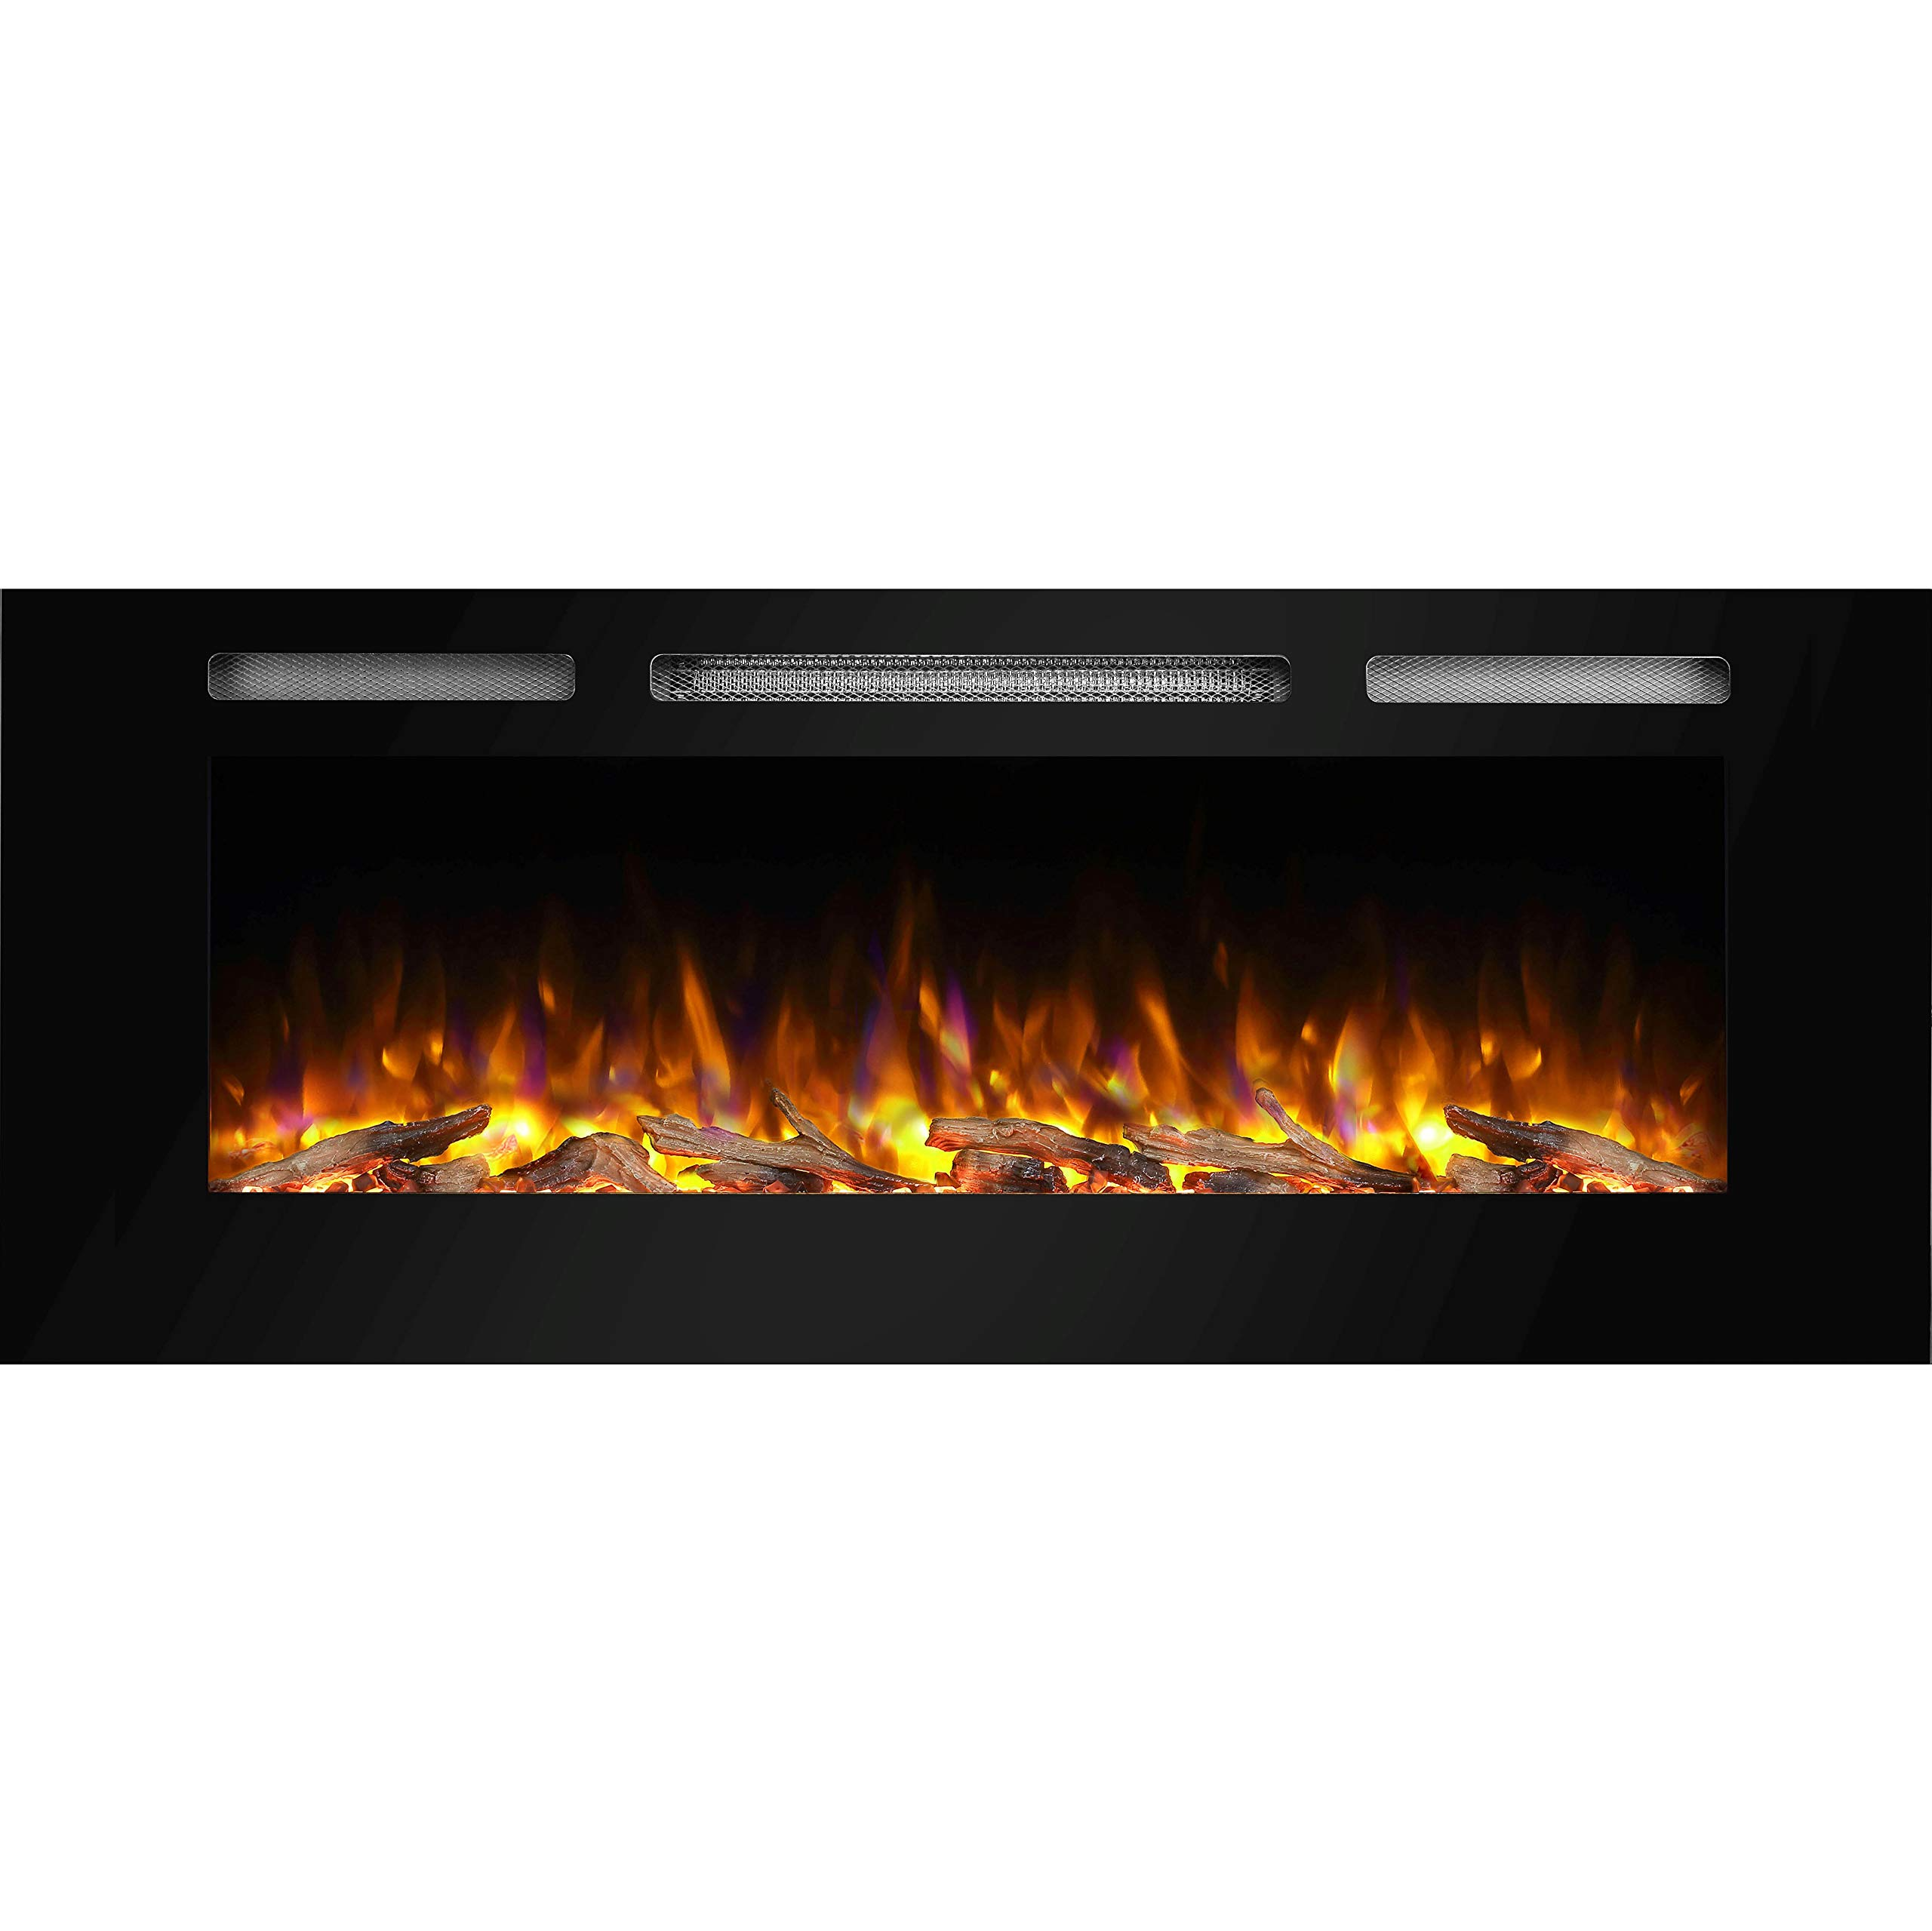 PuraFlame Alice 50 Inches Recessed Electric Fireplace, Wall Mounted for 2 X 6 Stud, Log Set & Crystal, 1500W Heater, Black by PuraFlame